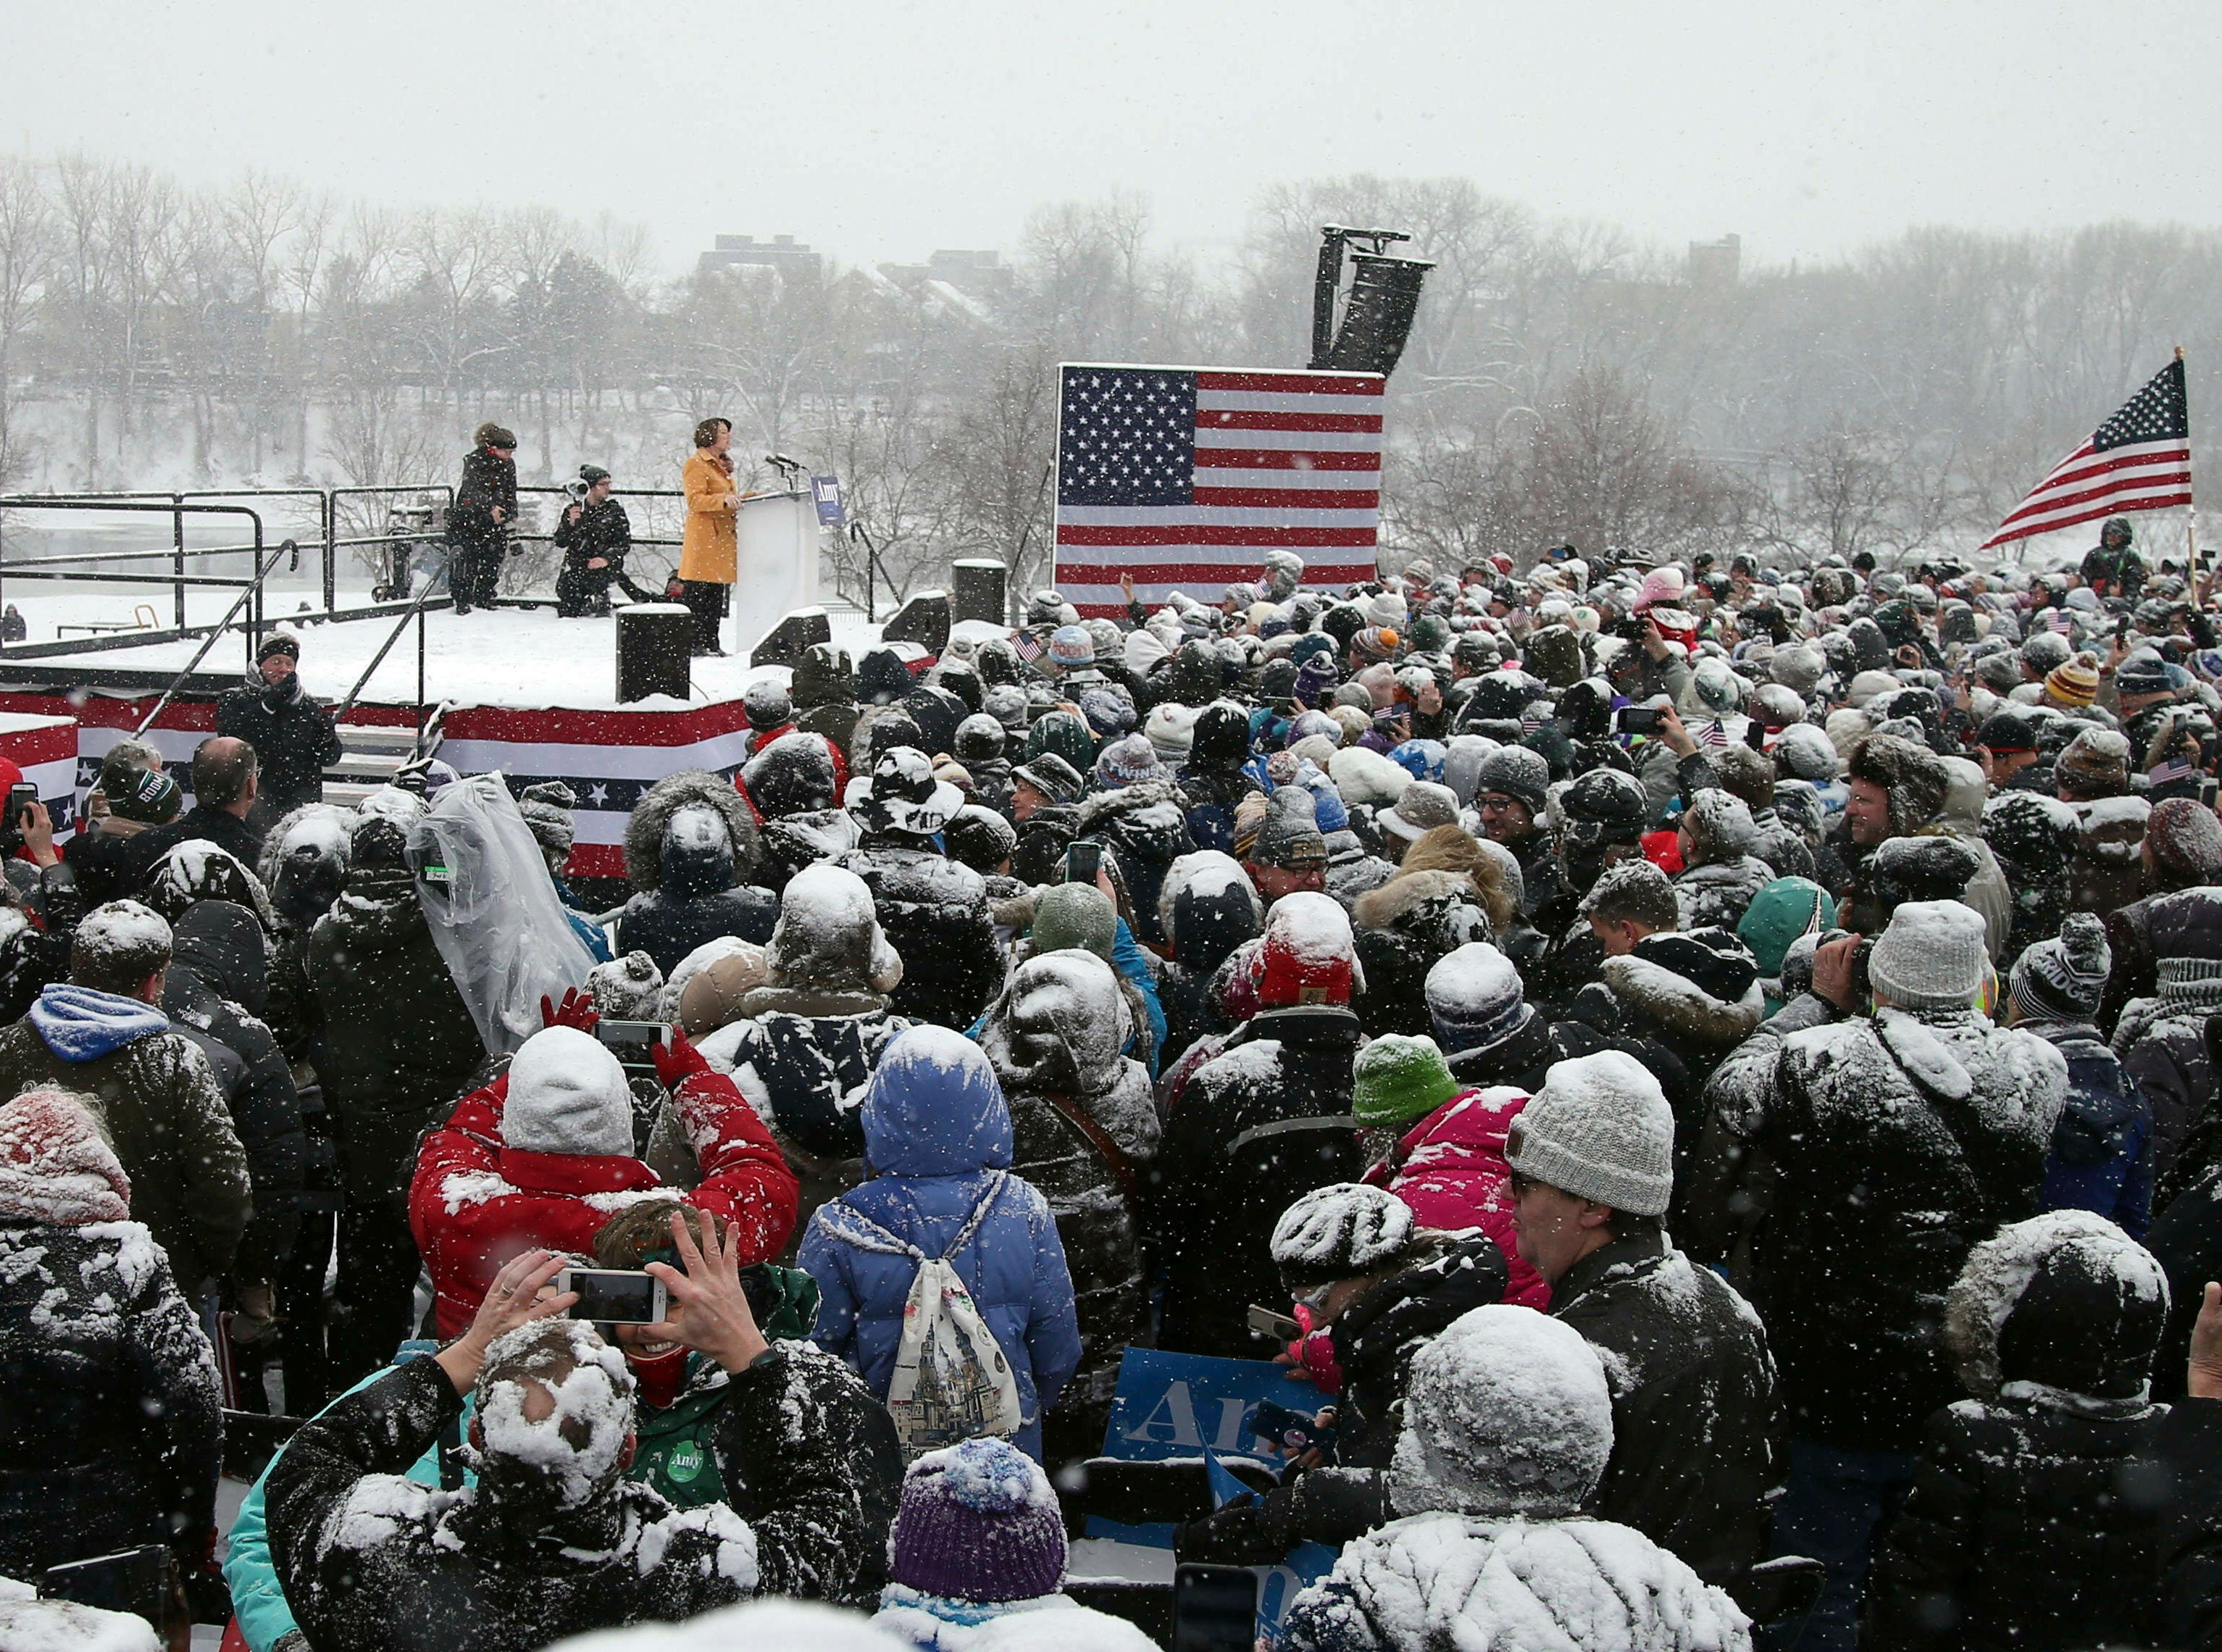 Democratic Sen. Amy Klobuchar, left, addresses a snowy rally where she announced she is entering the race for president Sunday, Feb. 10, 2019, at Boom Island Park in Minneapolis.